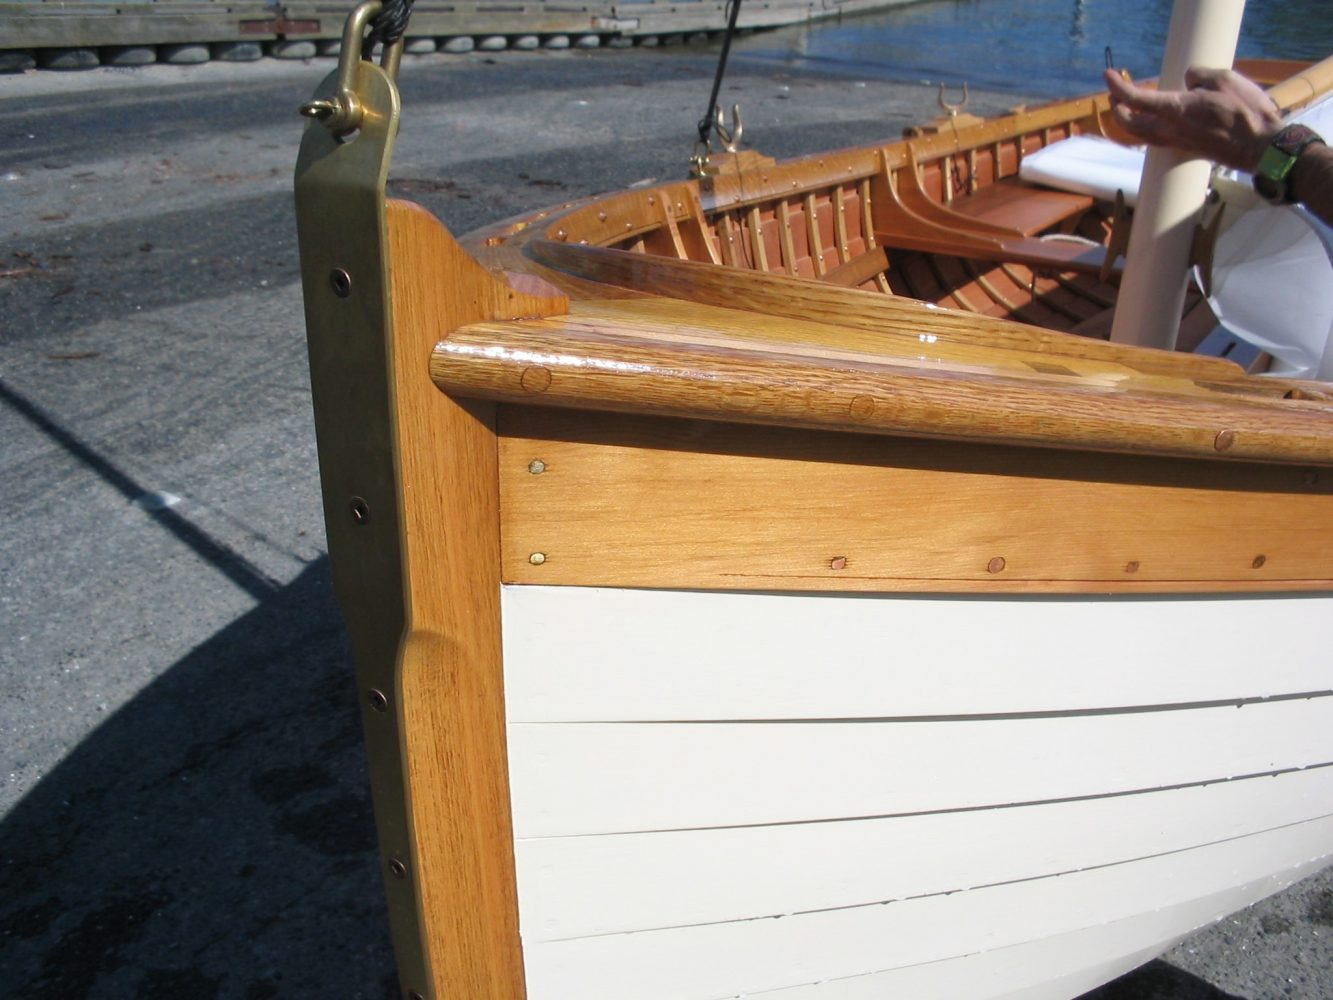 Paul Gartside designed Skylark dinghy